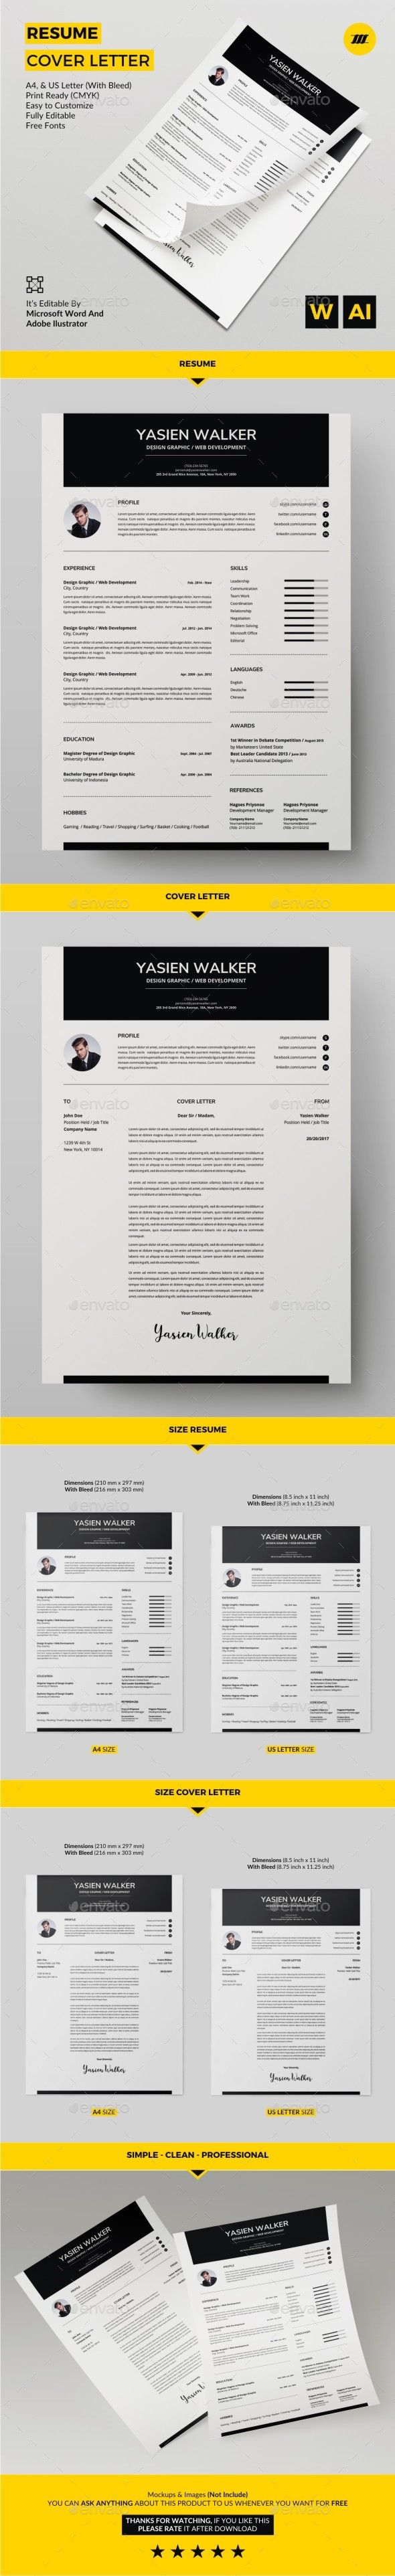 306 Best Images About Biz Resumes Applications On Pinterest